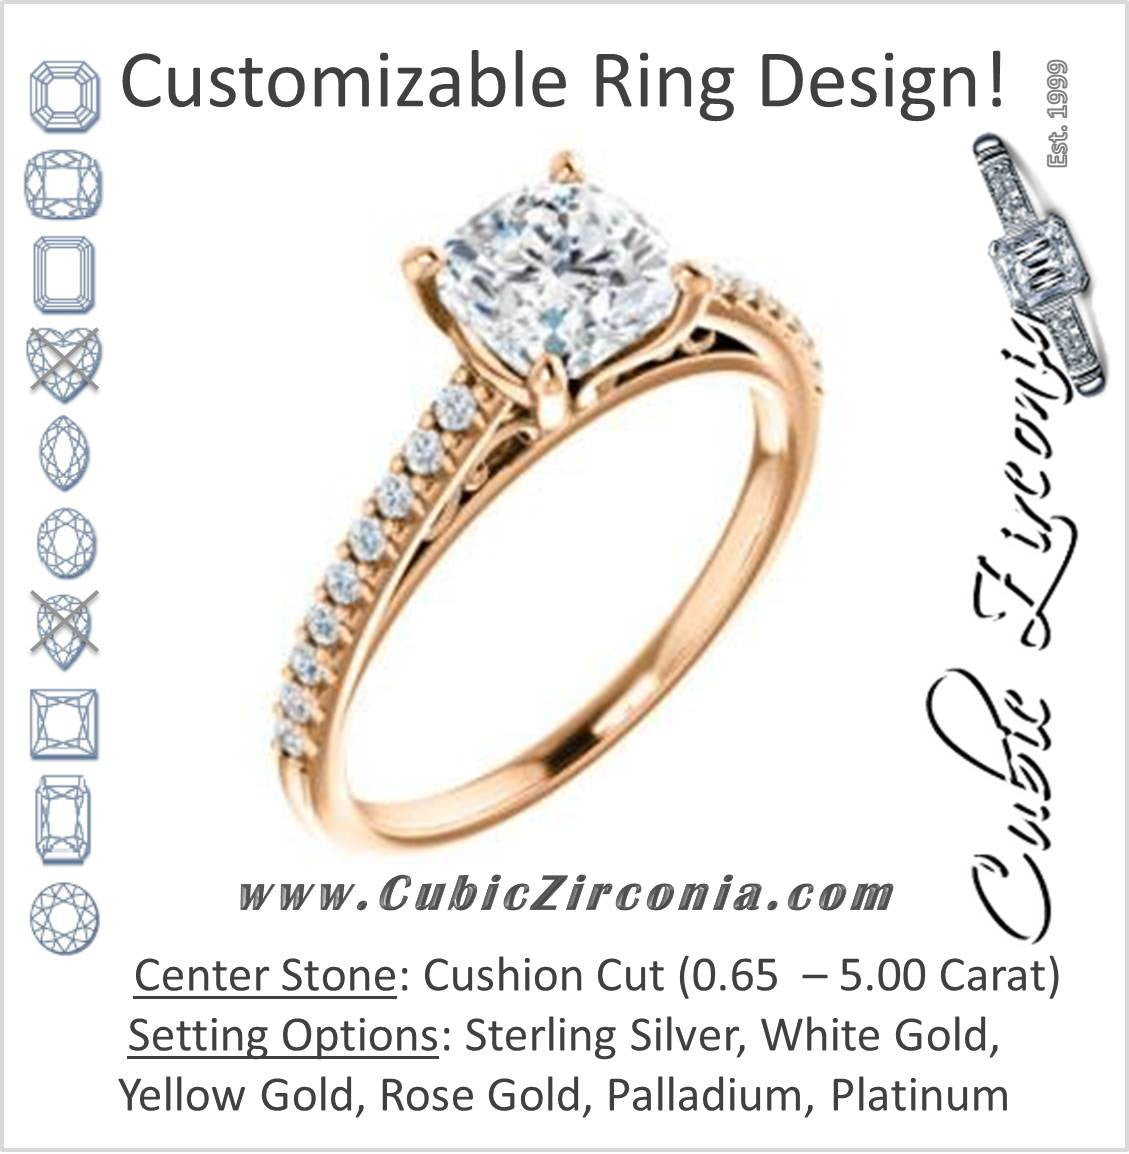 Cubic Zirconia Engagement Ring The Kiana Customizable Cushion Cut Design With Decorative Cathedral Trellis And Thin Pave Band